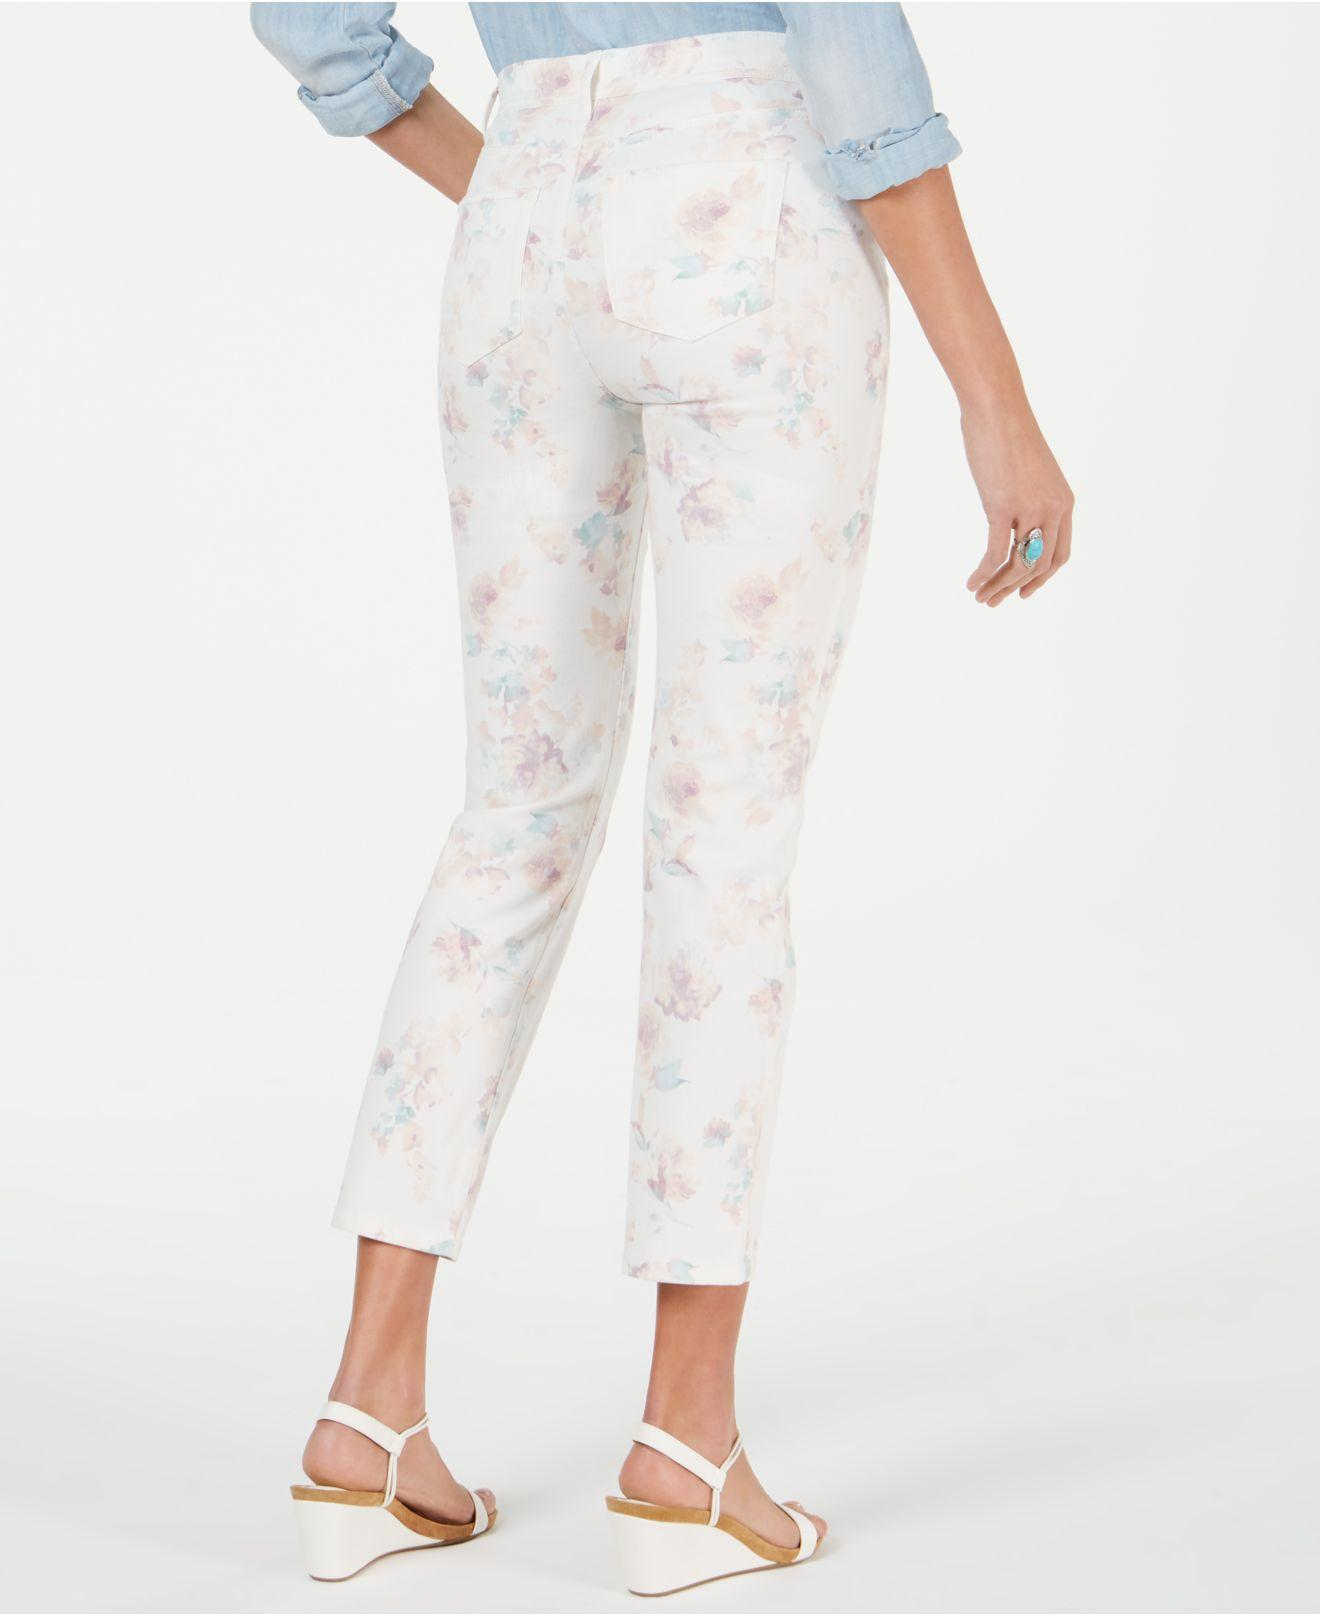 57974494893 Lyst - Style & Co. Petite Tummy-control Printed Skinny Pants, Created For  Macy's in White